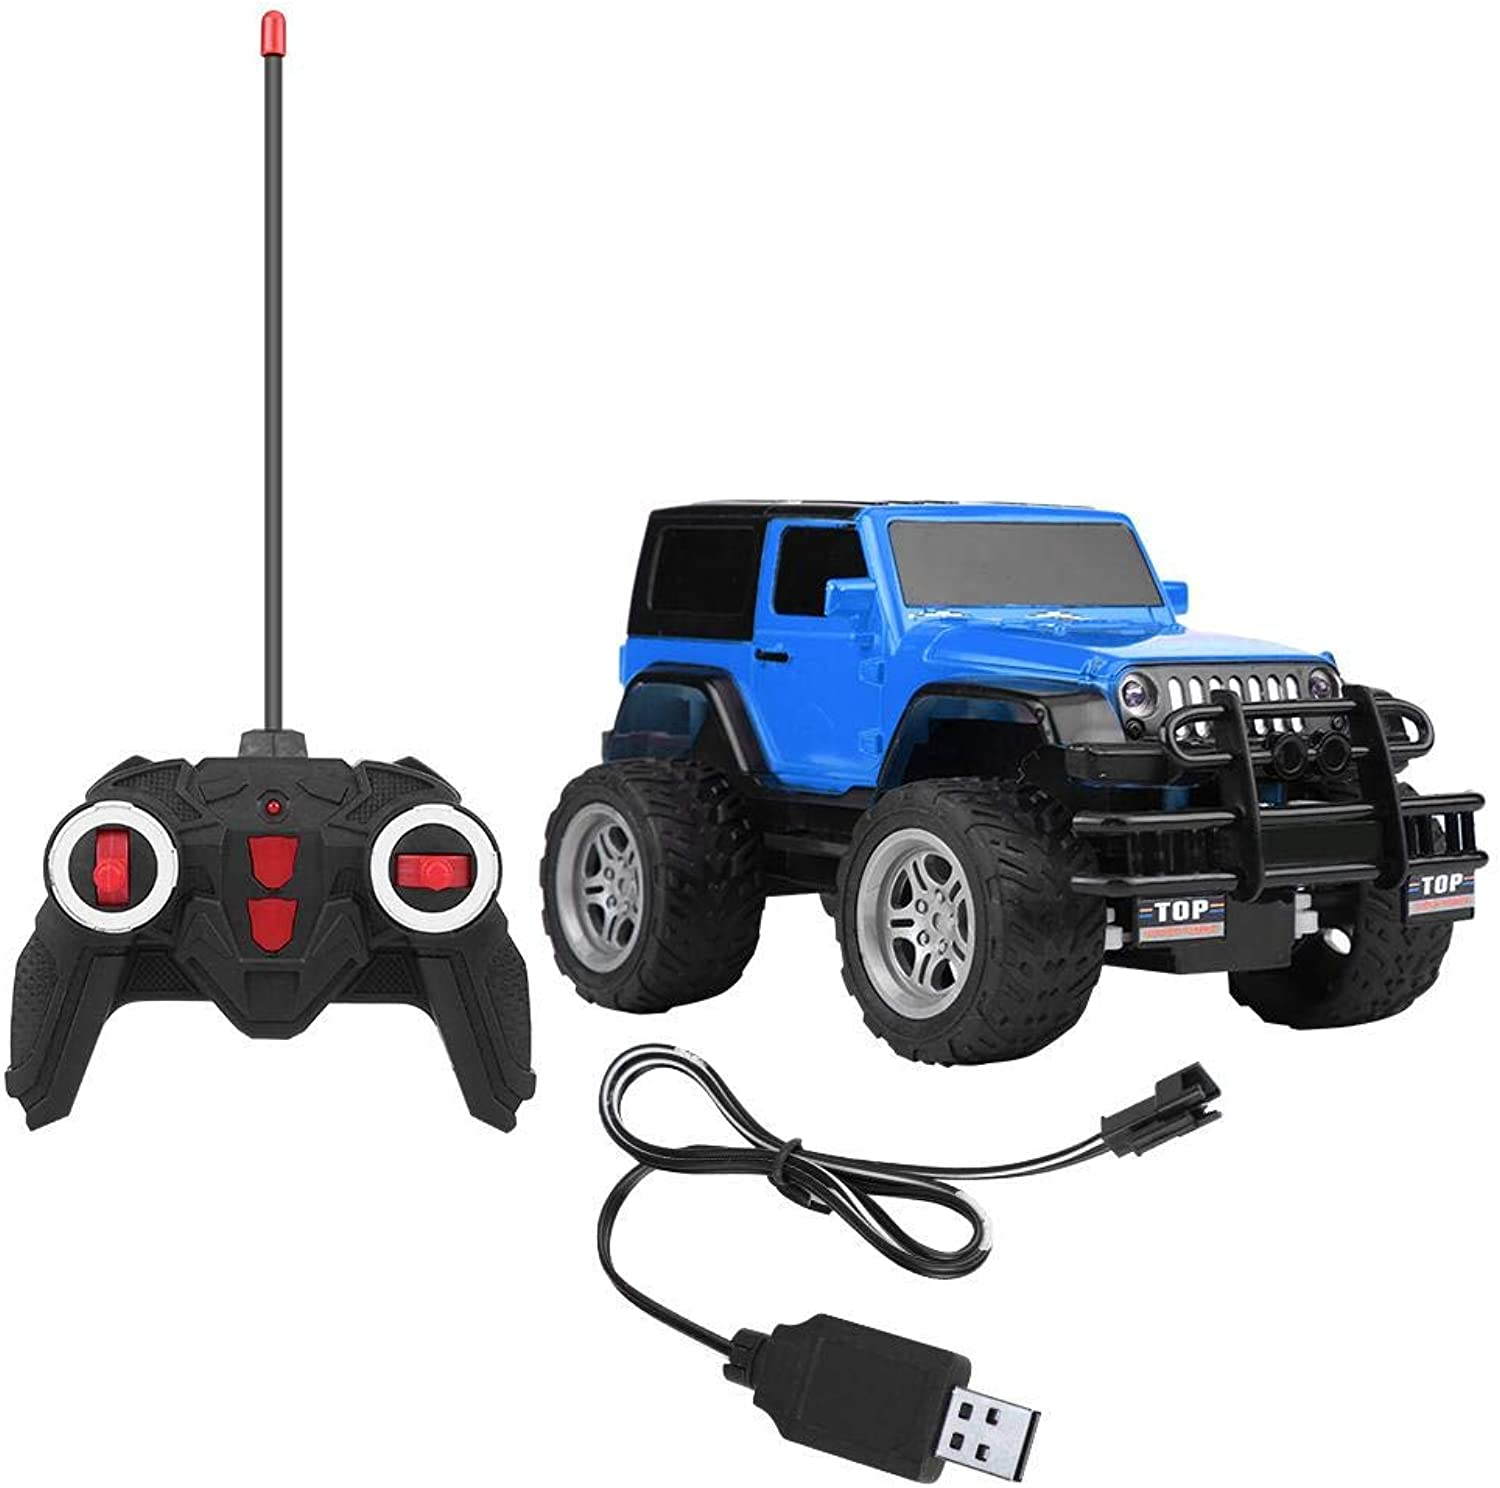 Generic 1 18 2.4GHz Frequency 4CH Rechargeable Racing Vehicle 1 18 Scale RC OffRoad Car Toy Kids Gift bluee